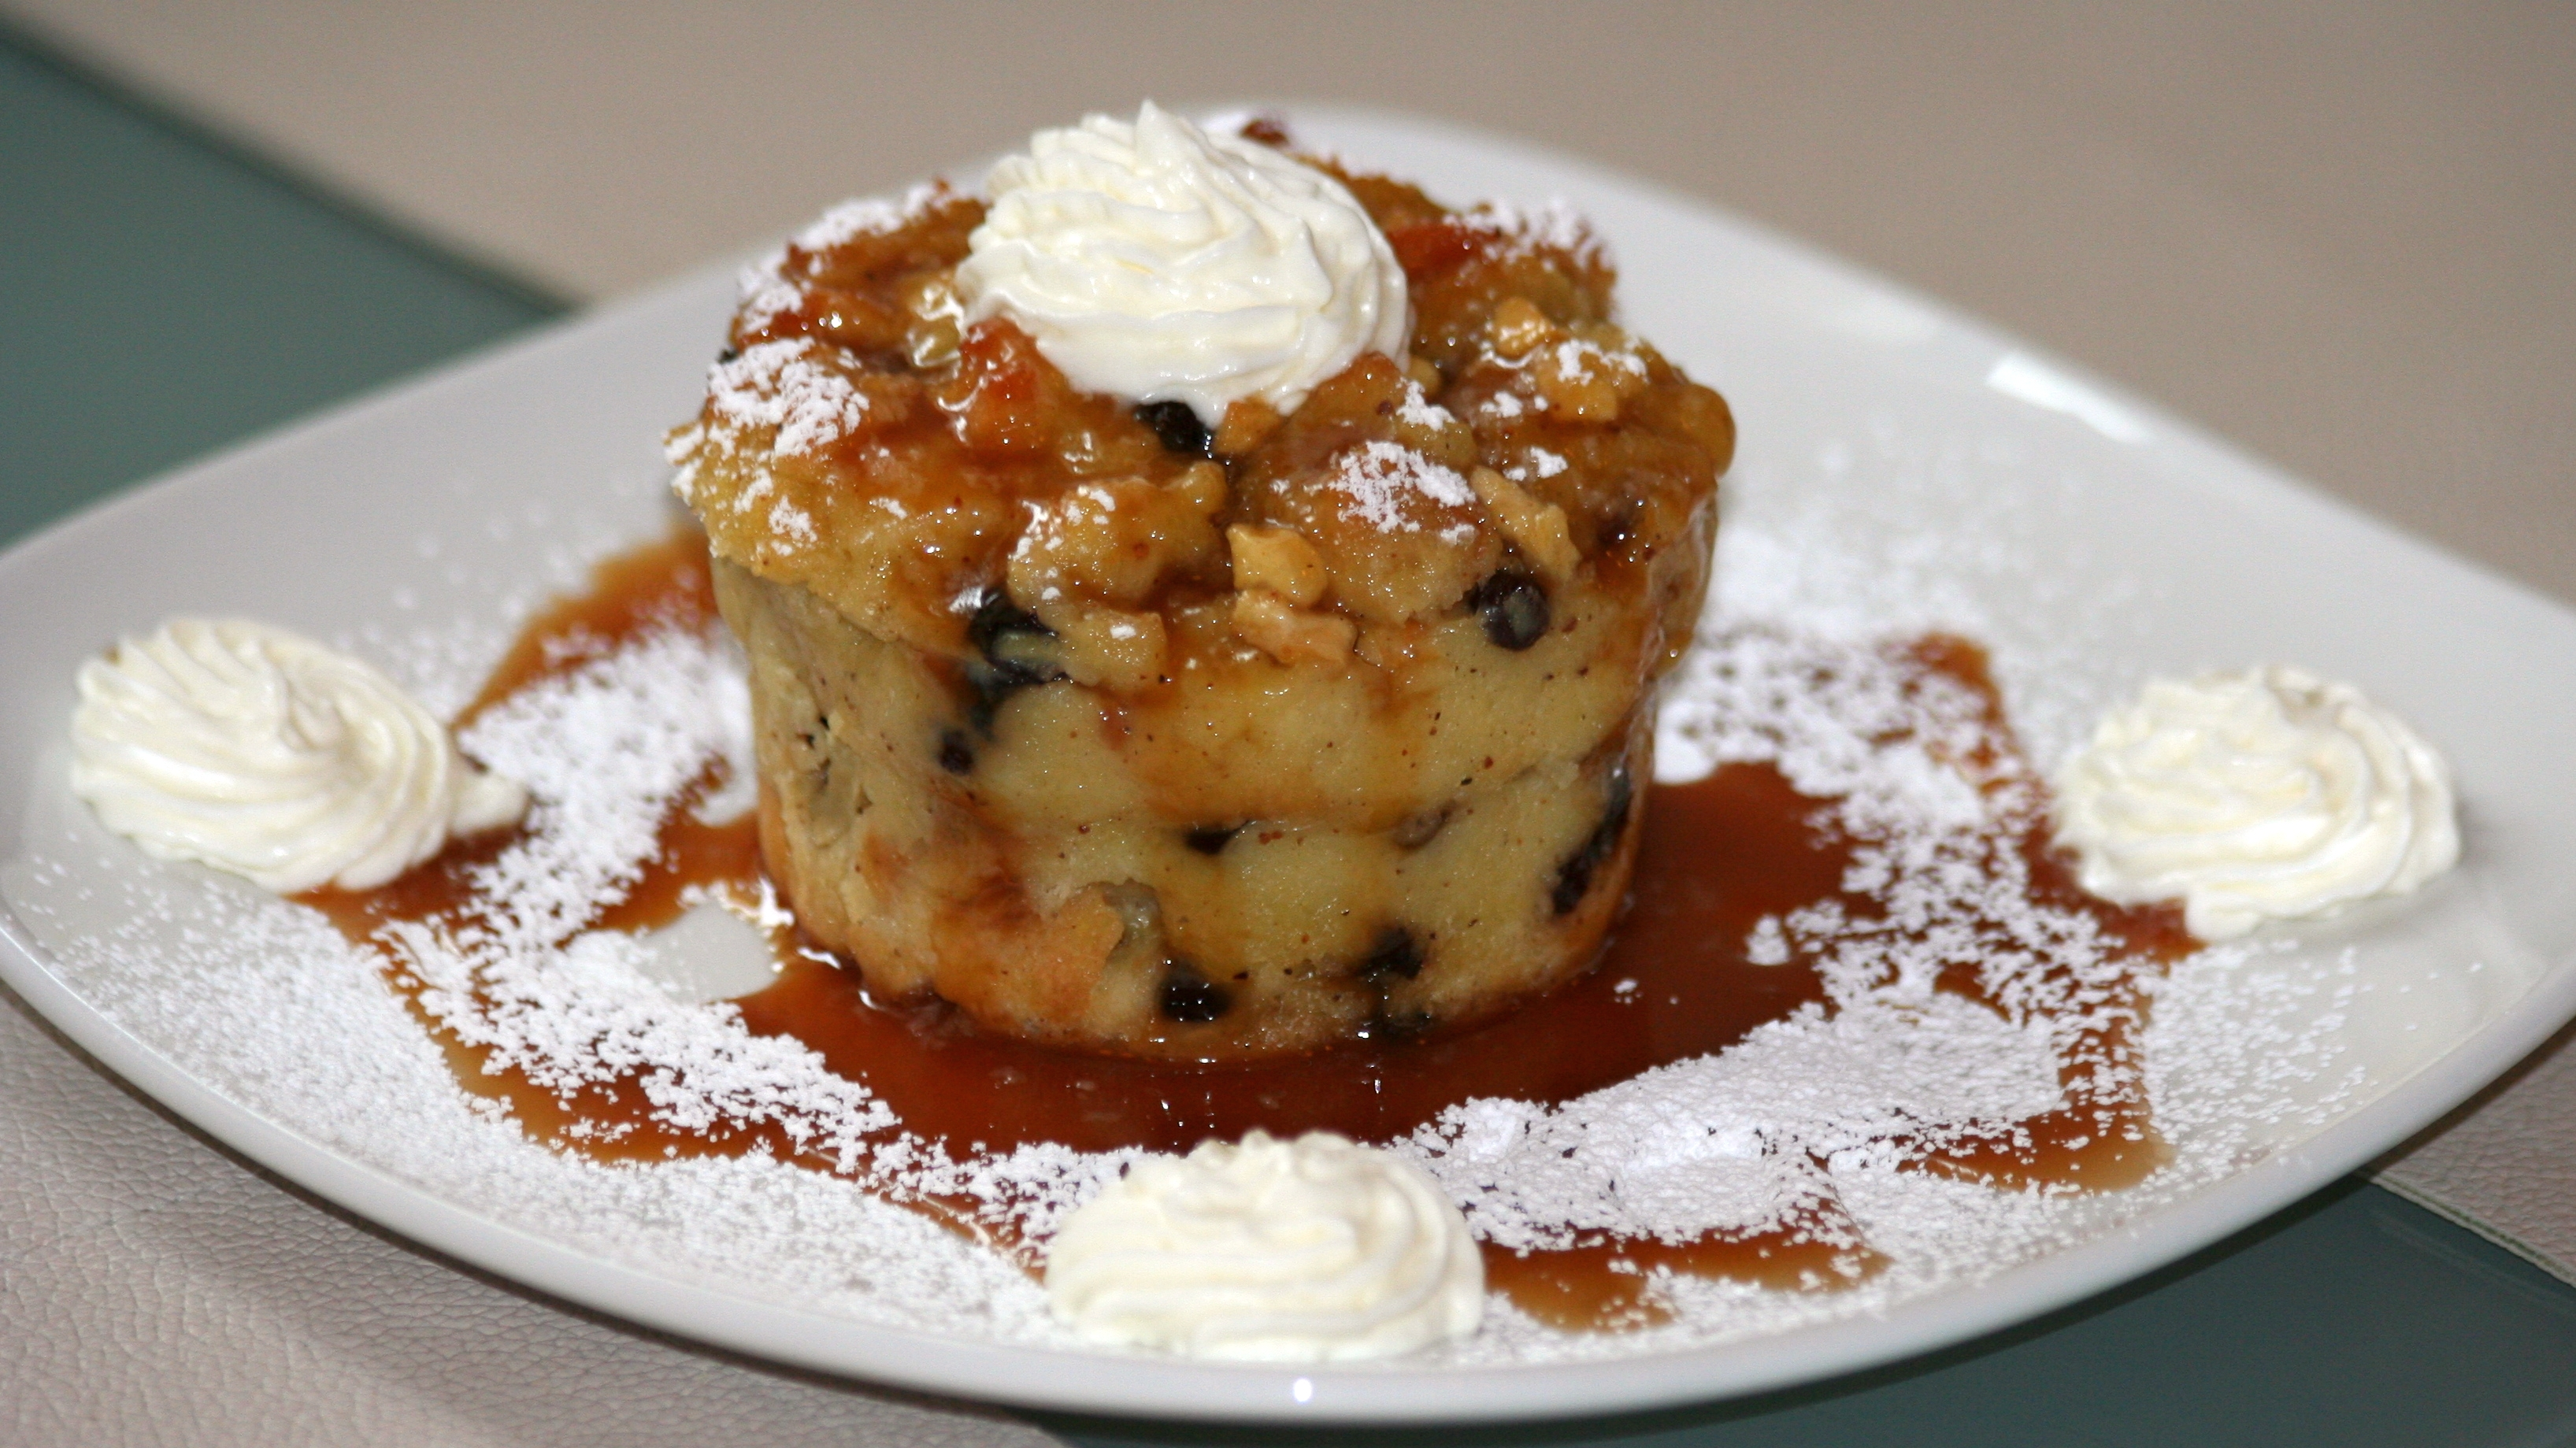 Description BreadPudding.jpg